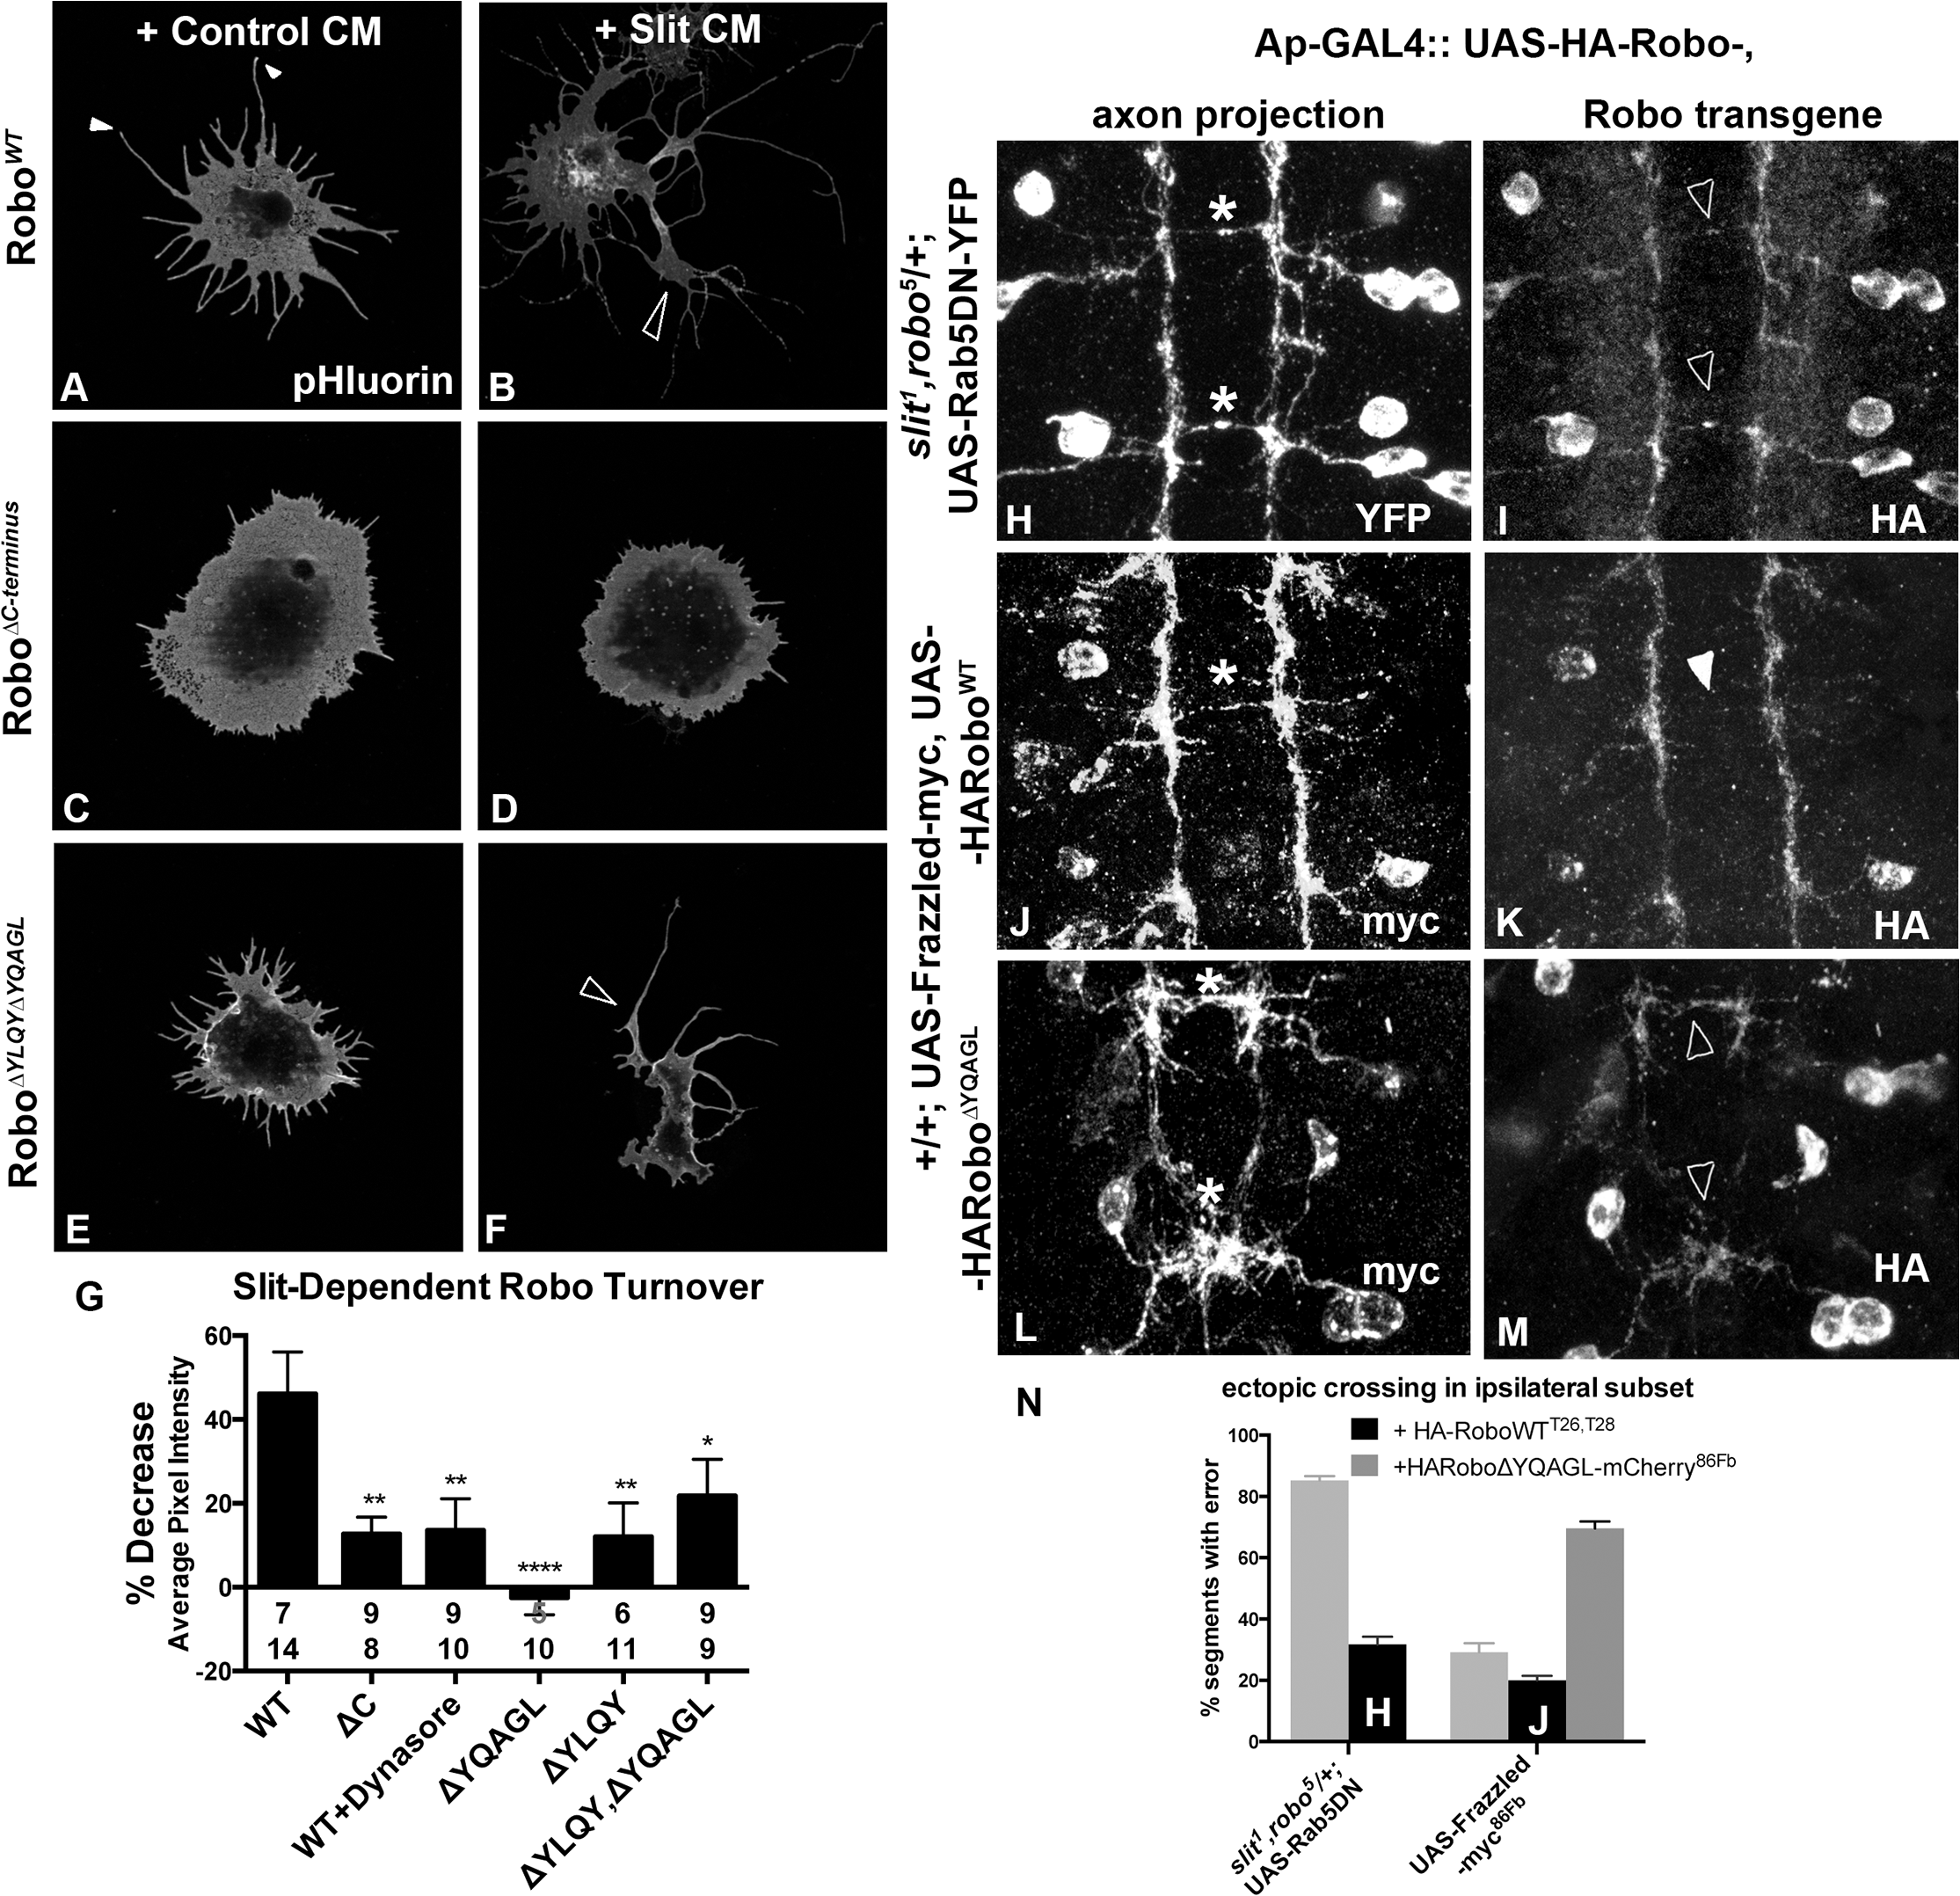 Clathrin-dependent Endocytosis is required for removal of Robo from the surface.